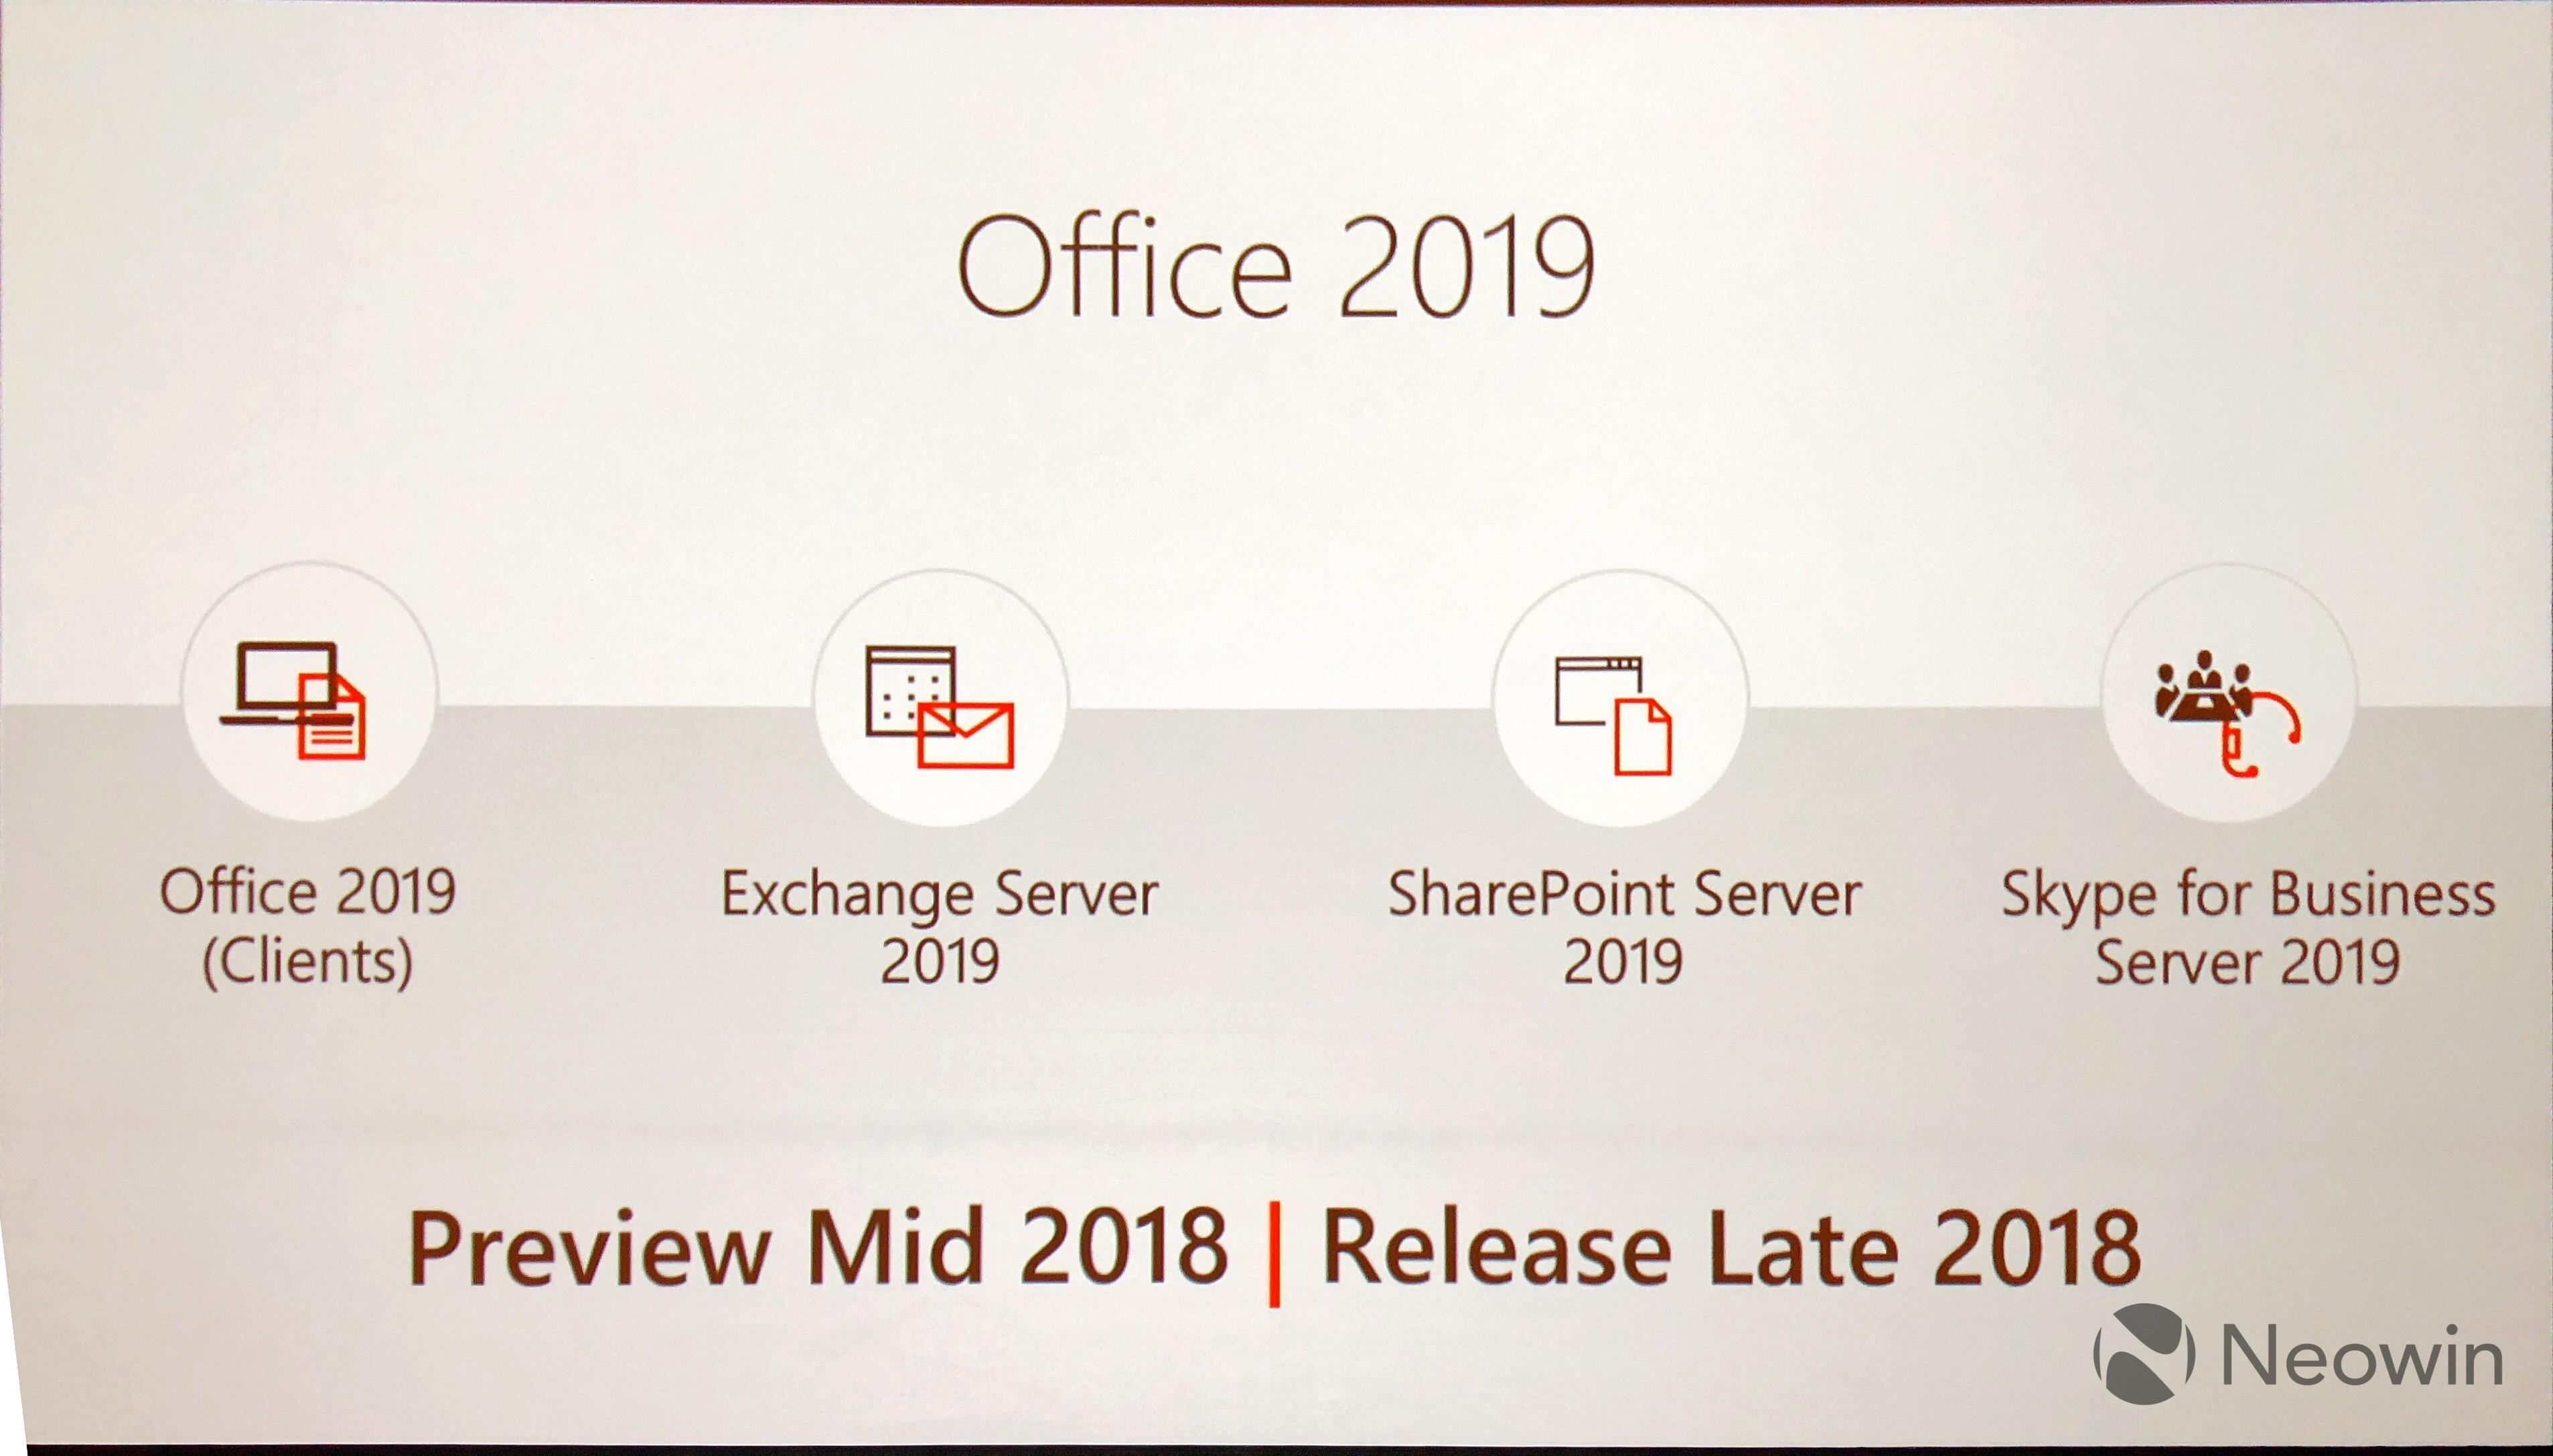 Microsoft Announces Office 2019 Its Ignite Conference